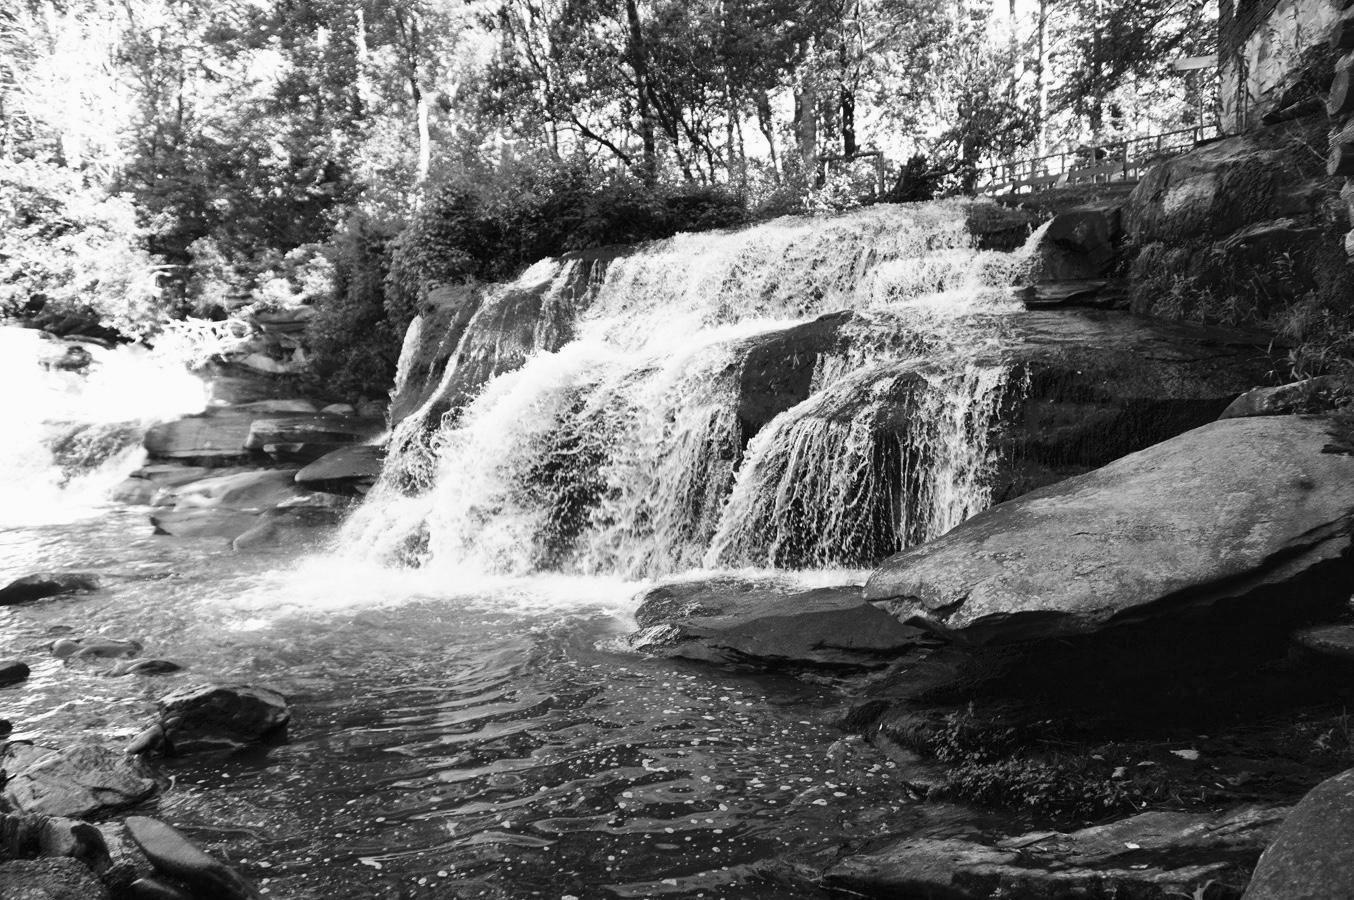 Mills Shoals Falls, Brevard, NC is one of many beautiful places in the Carolina mountains. See the video    Connections In Nature    that features my paintings and their inspirations on this site.